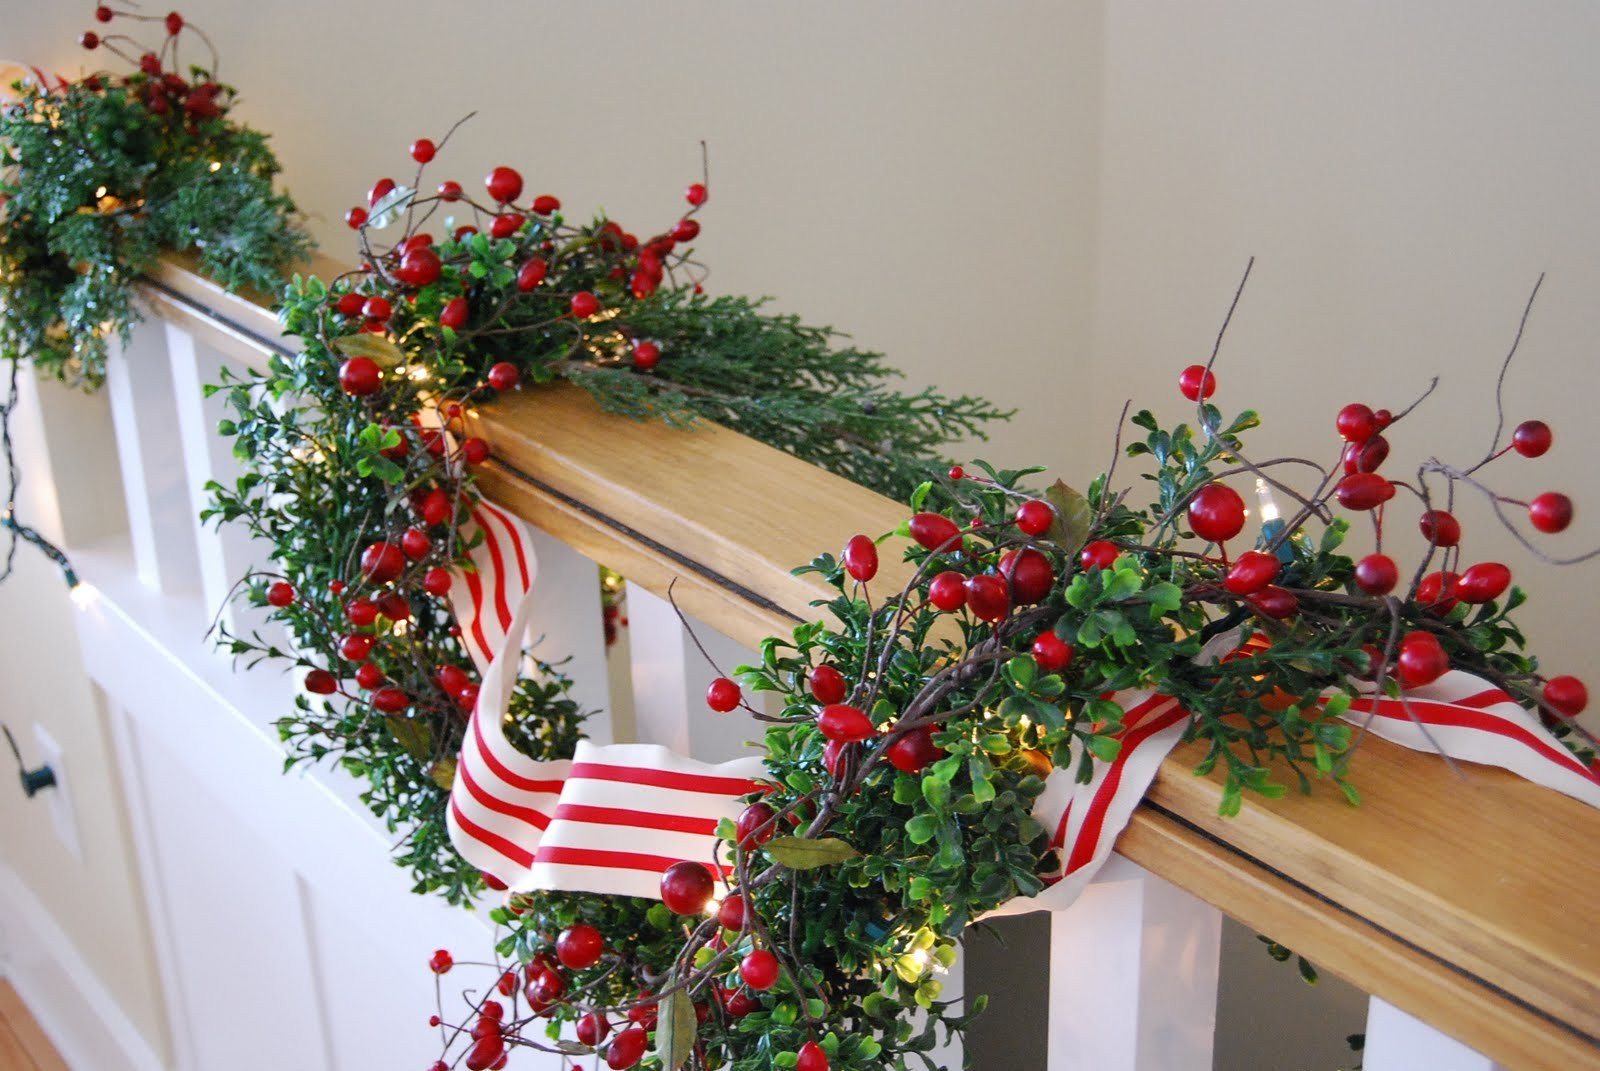 Best ideas about DIY Christmas Garlands . Save or Pin Home By Heidi DIY Christmas Garland Now.